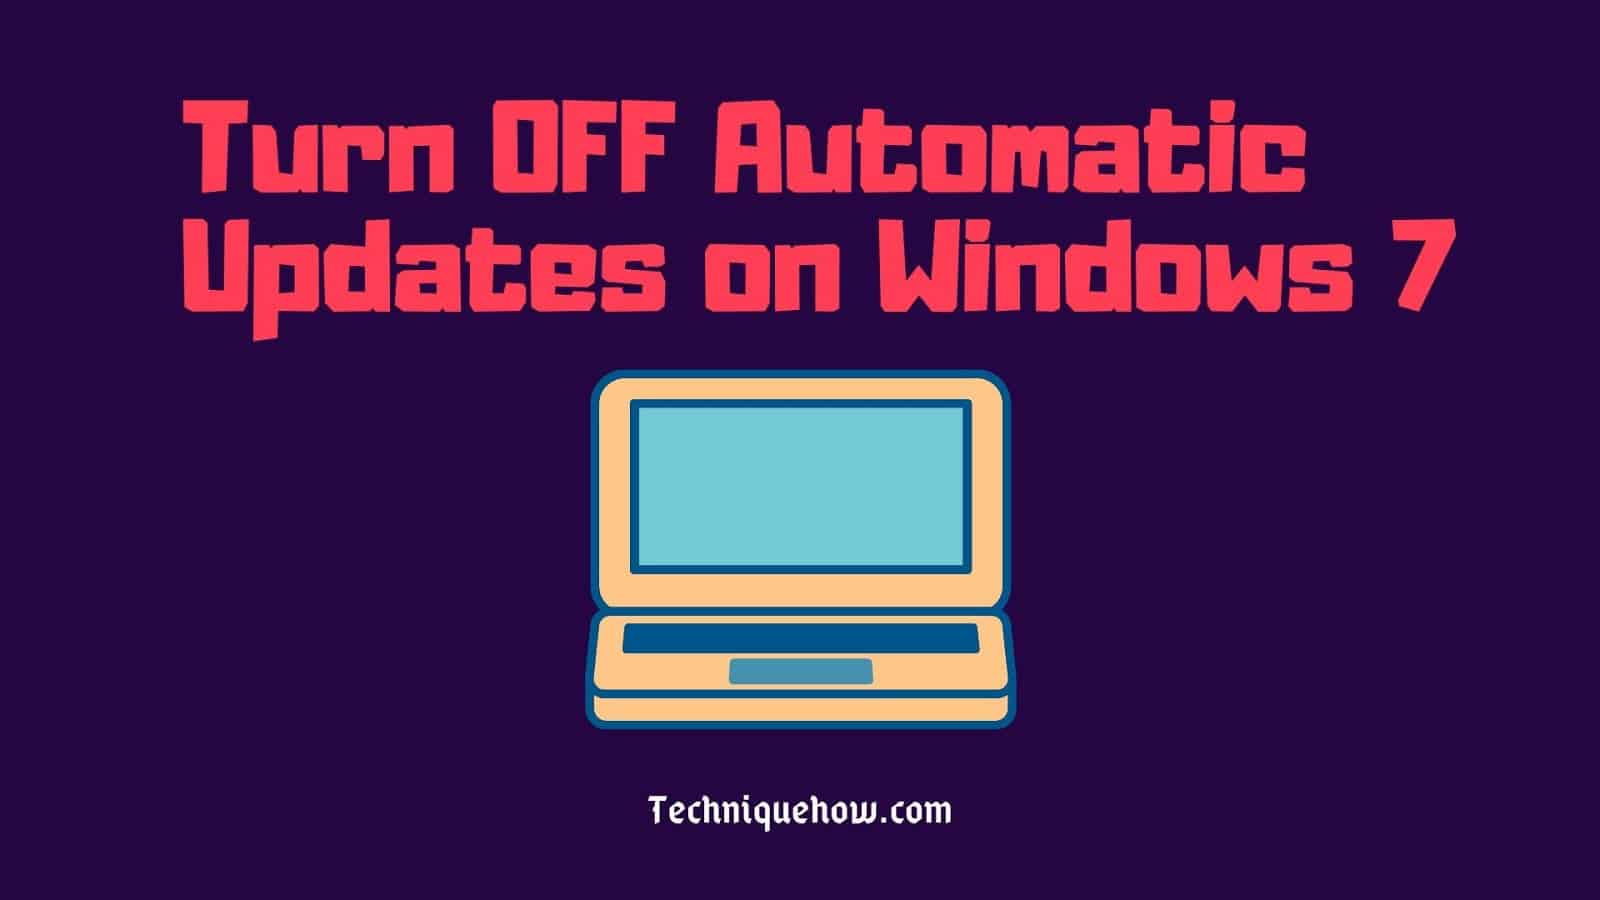 Turn off Automatic Updates on Windows